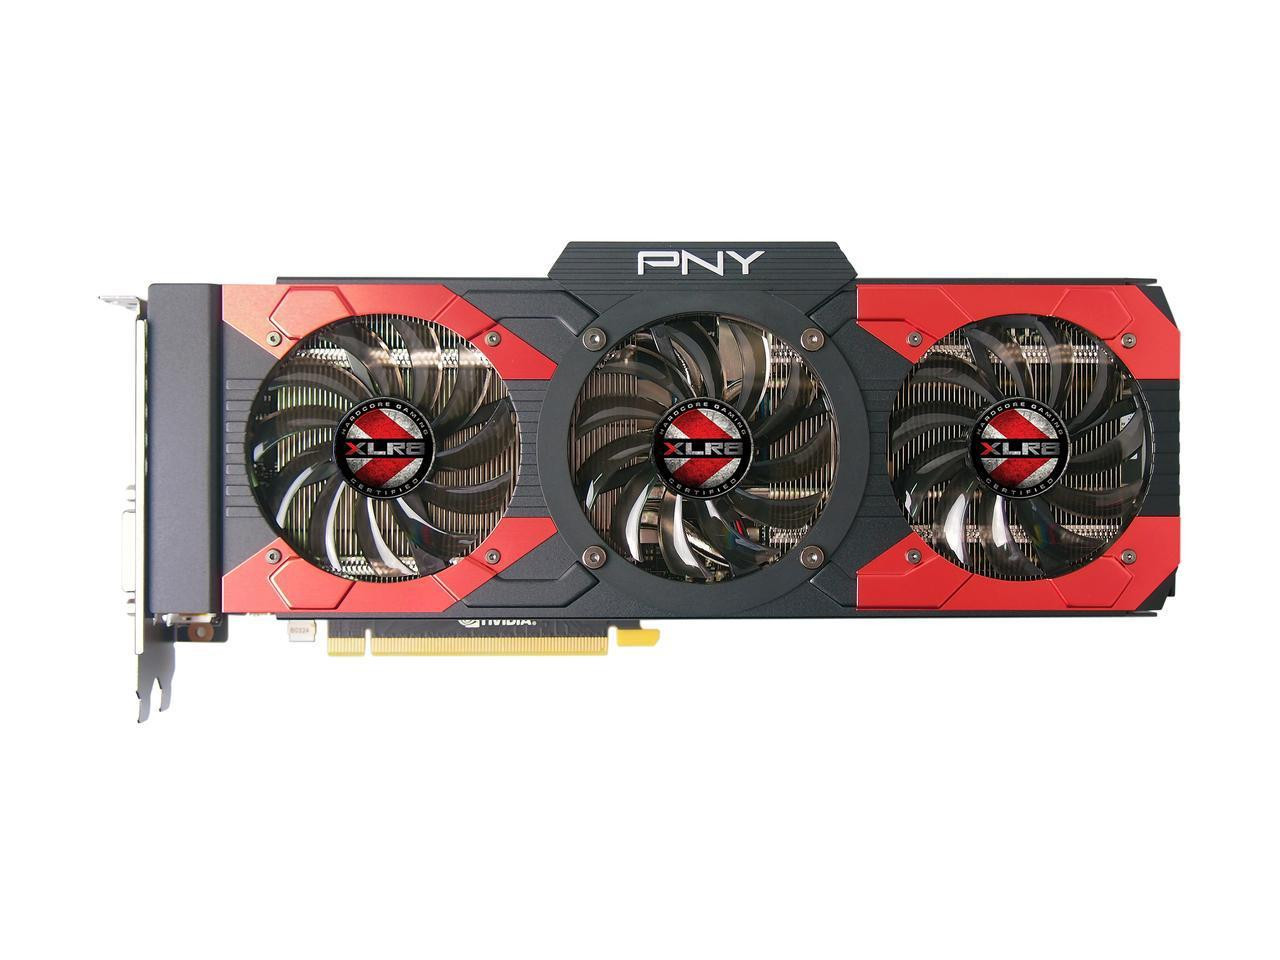 New Video Card Pny Geforce GTX 1070 8 Gb Gddr5 Pcie